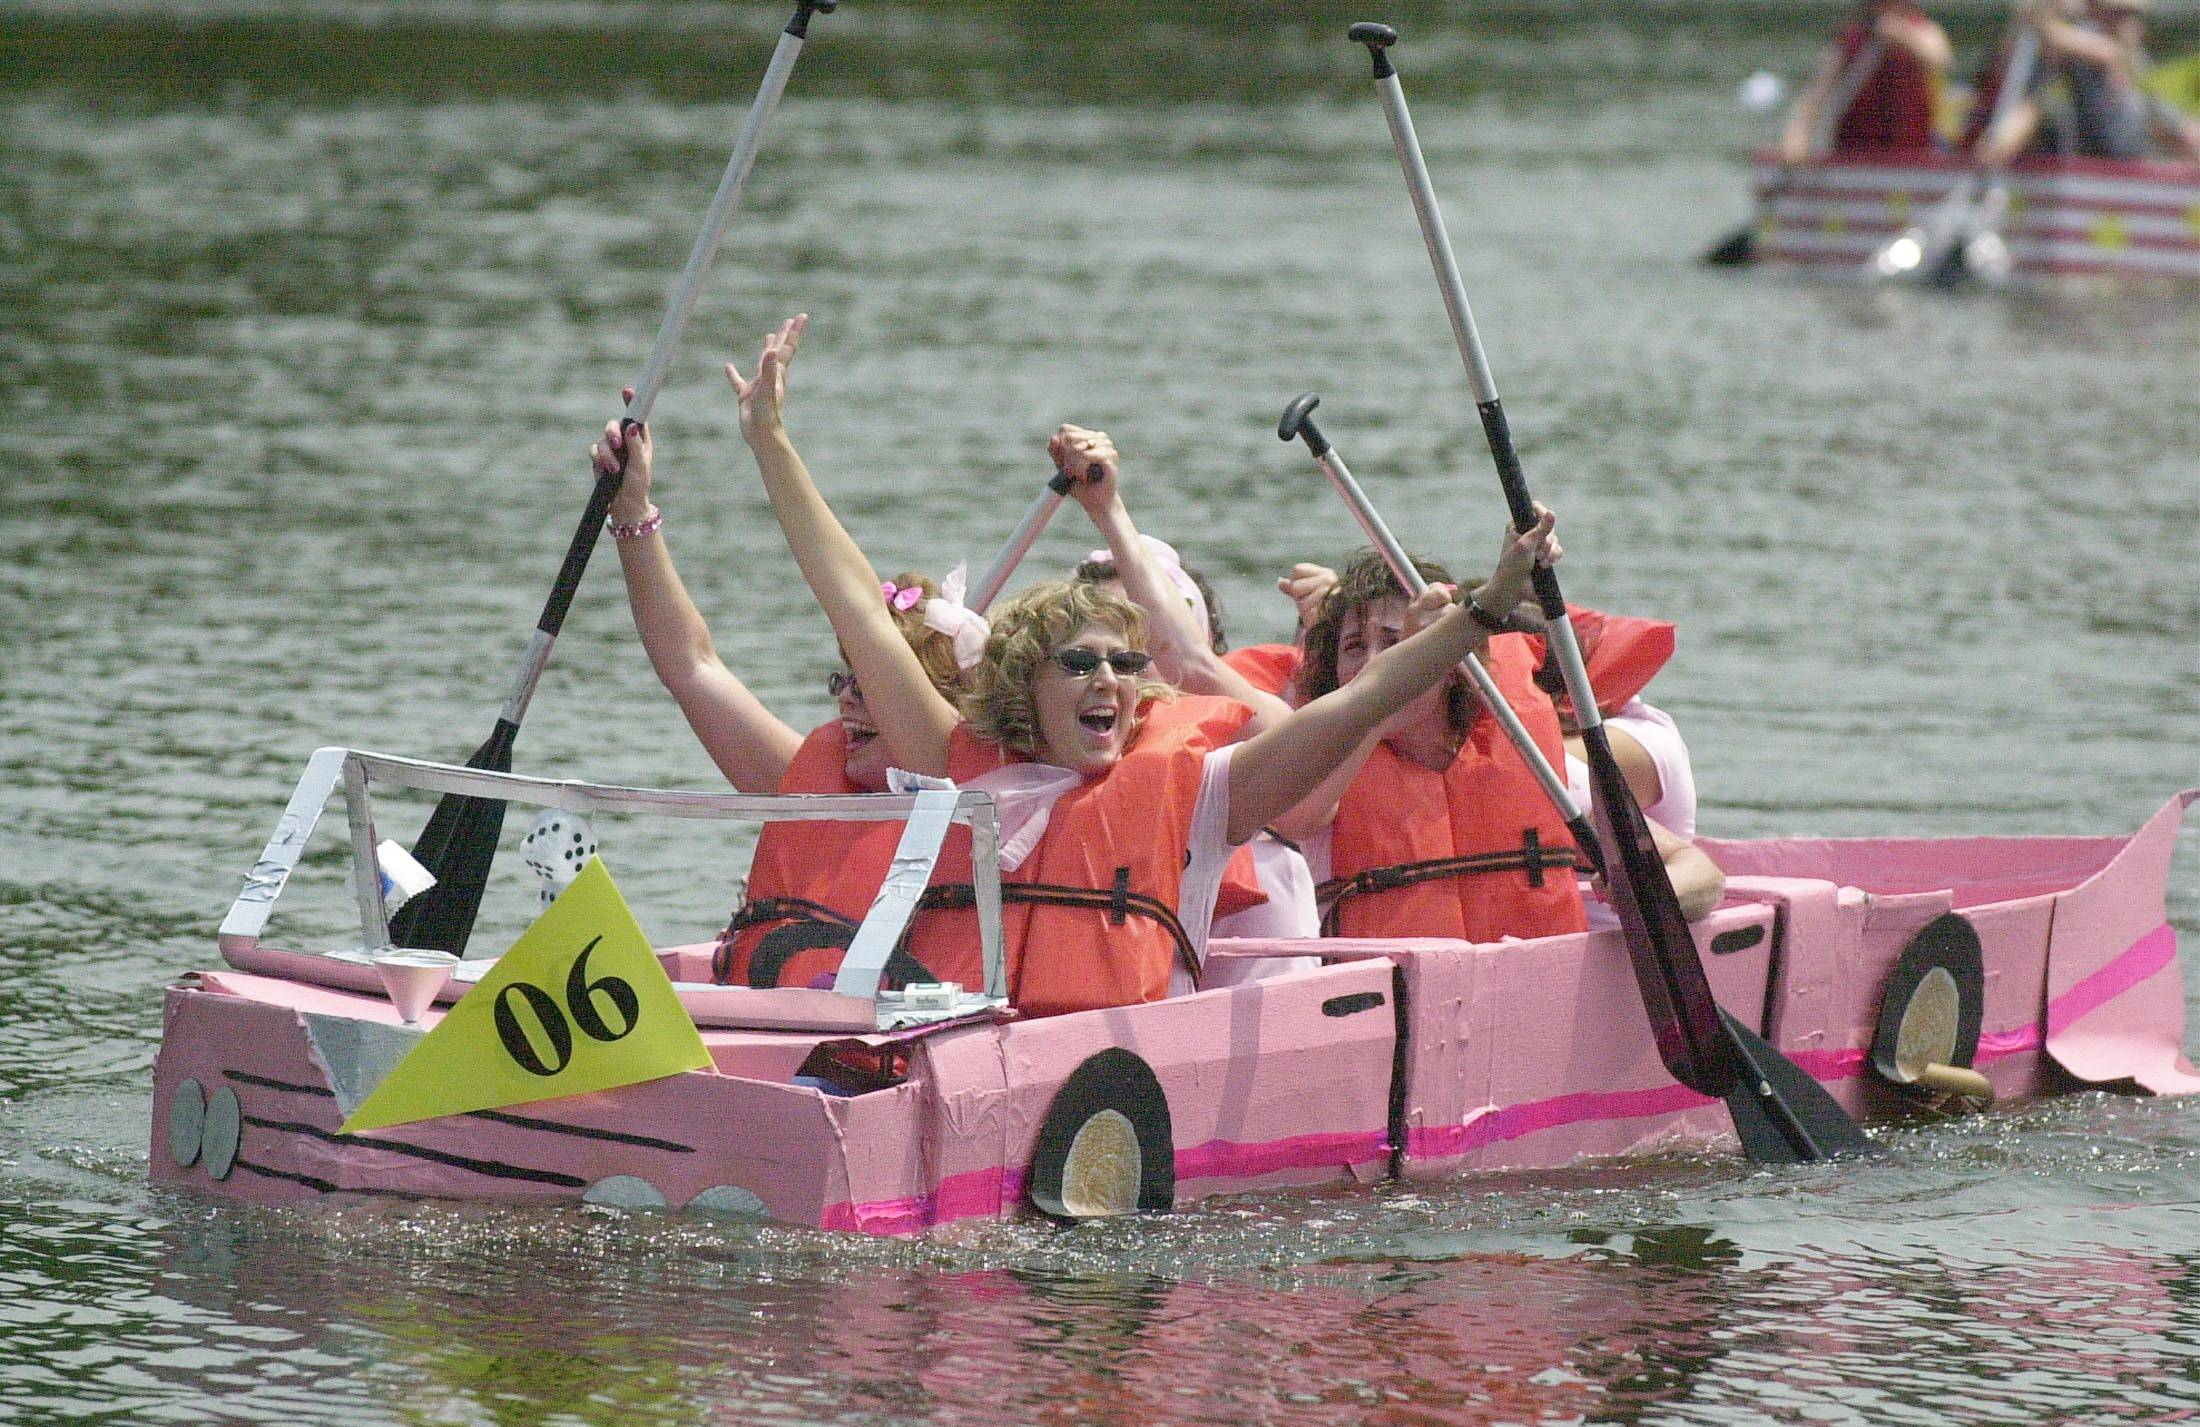 Glen Ellyn Park District's annual Cardboard Boat Regatta returns Saturday to Lake Ellyn.